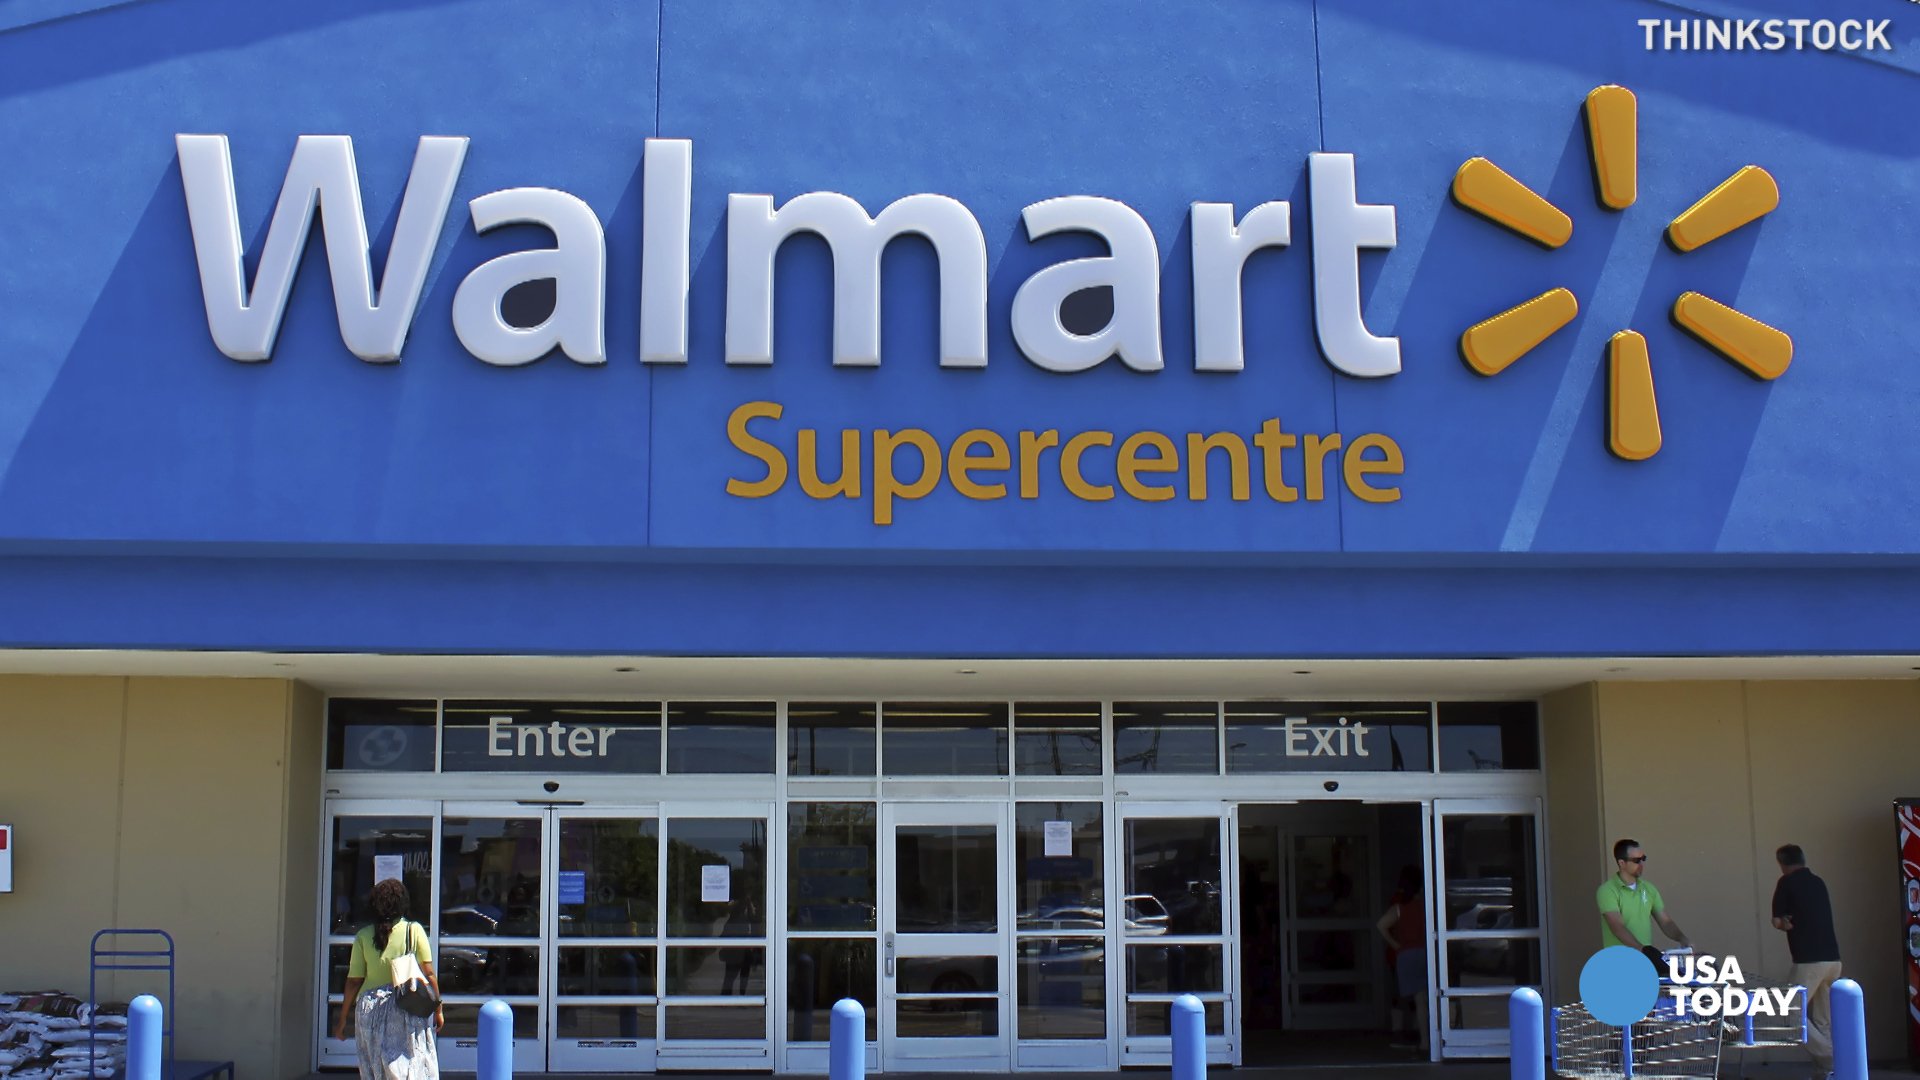 5 things you should never buy at Walmart